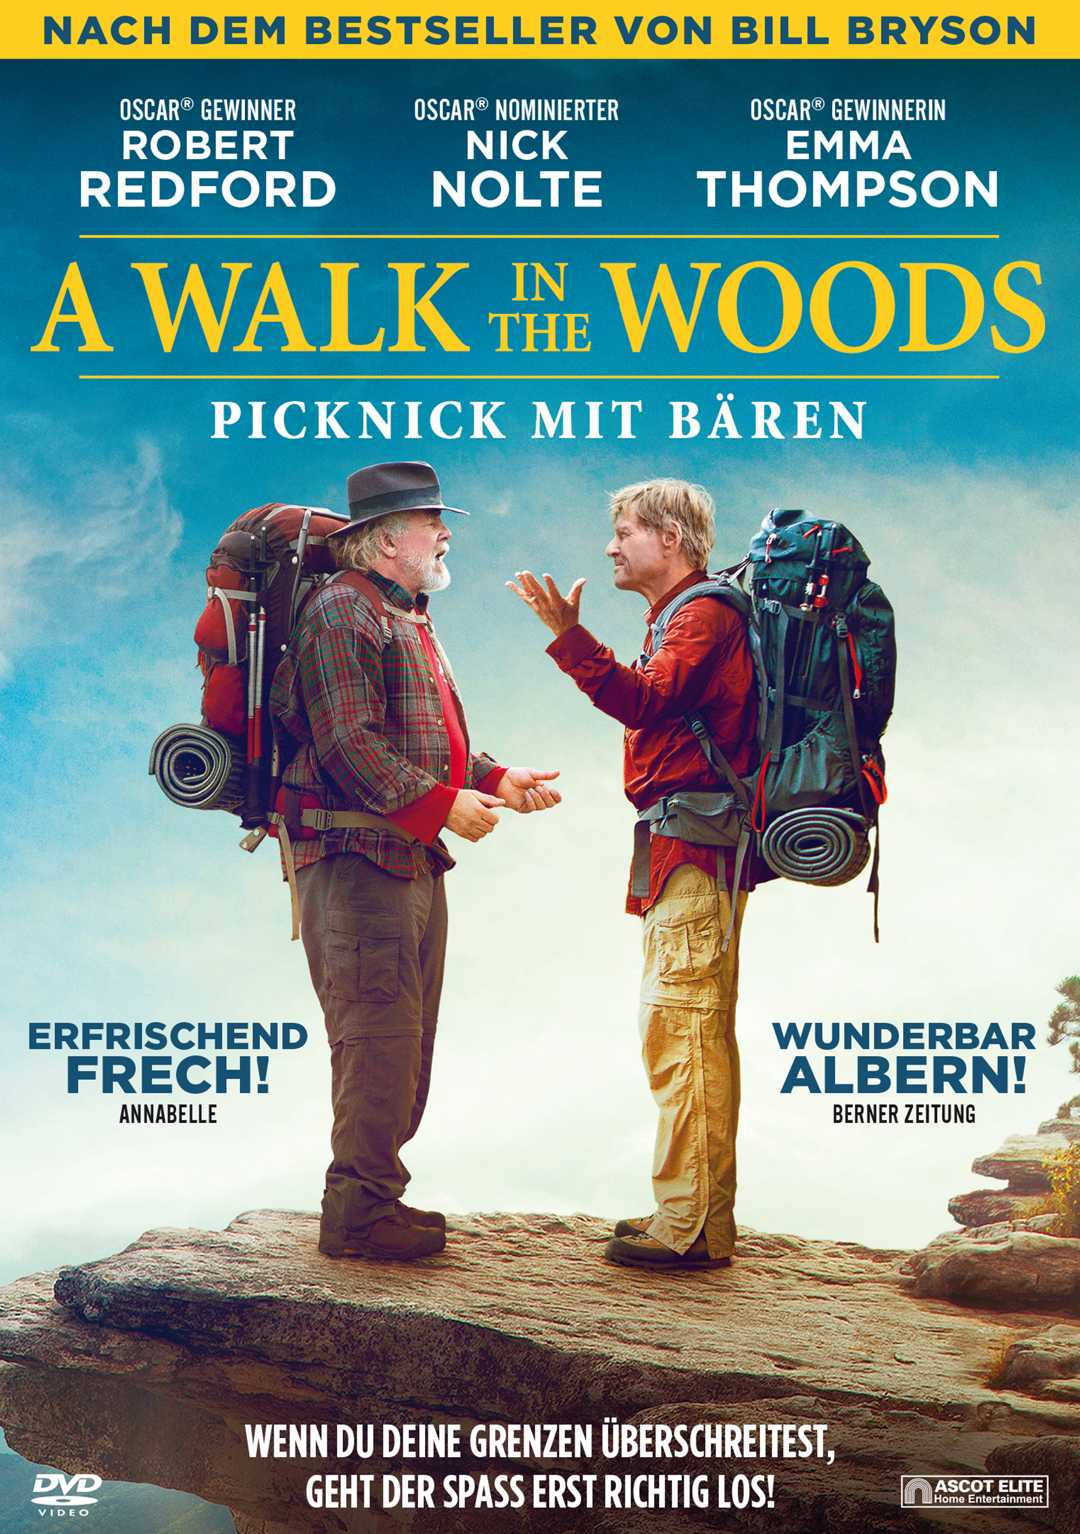 Picknick mit Bären – A walk in the woods